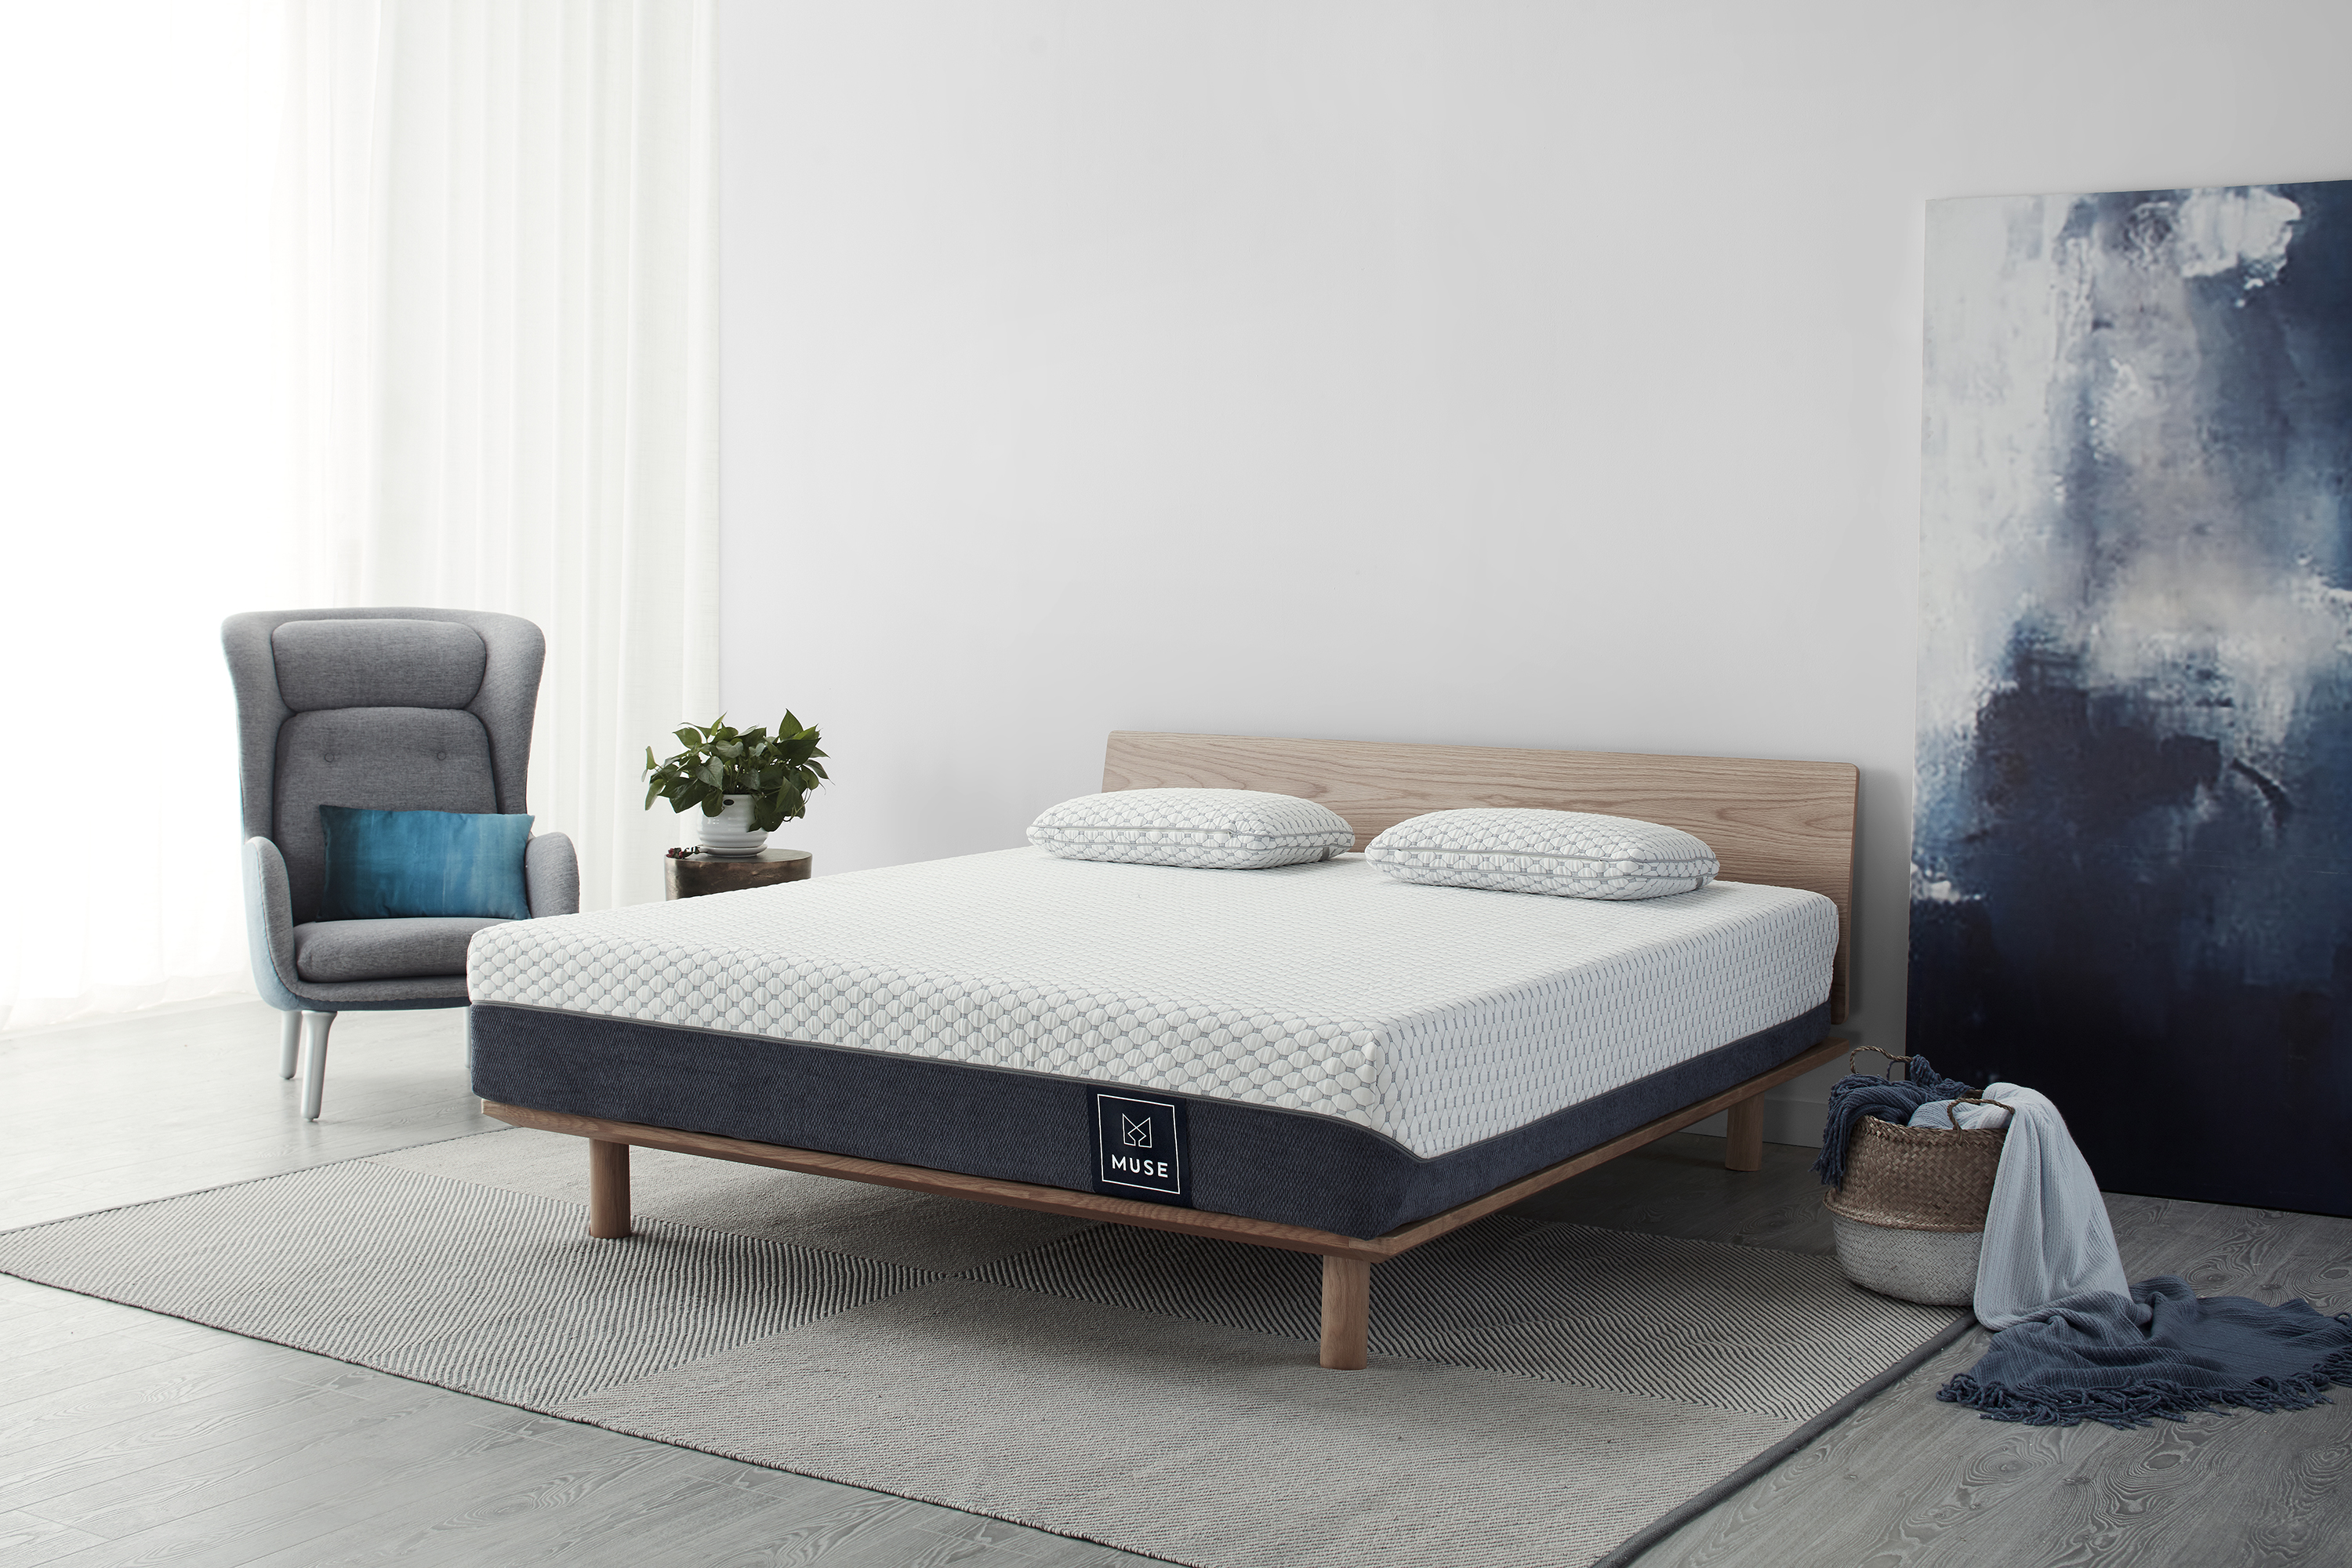 Muse mattress in bedroom